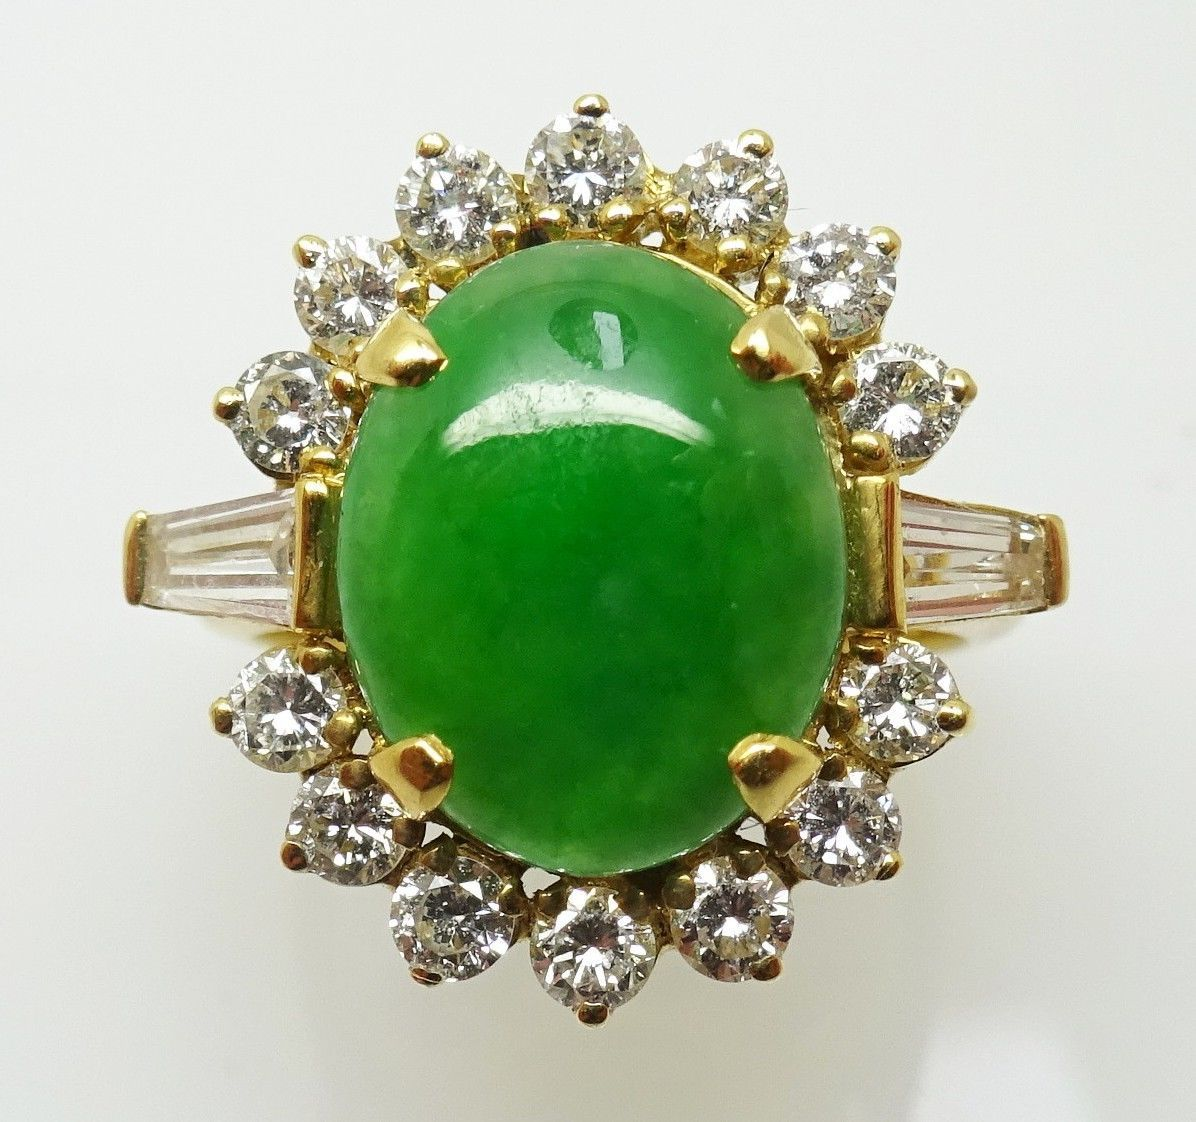 Primary image for 18k Gold Oval Jade Ring with .33ct Diamonds (#3453)